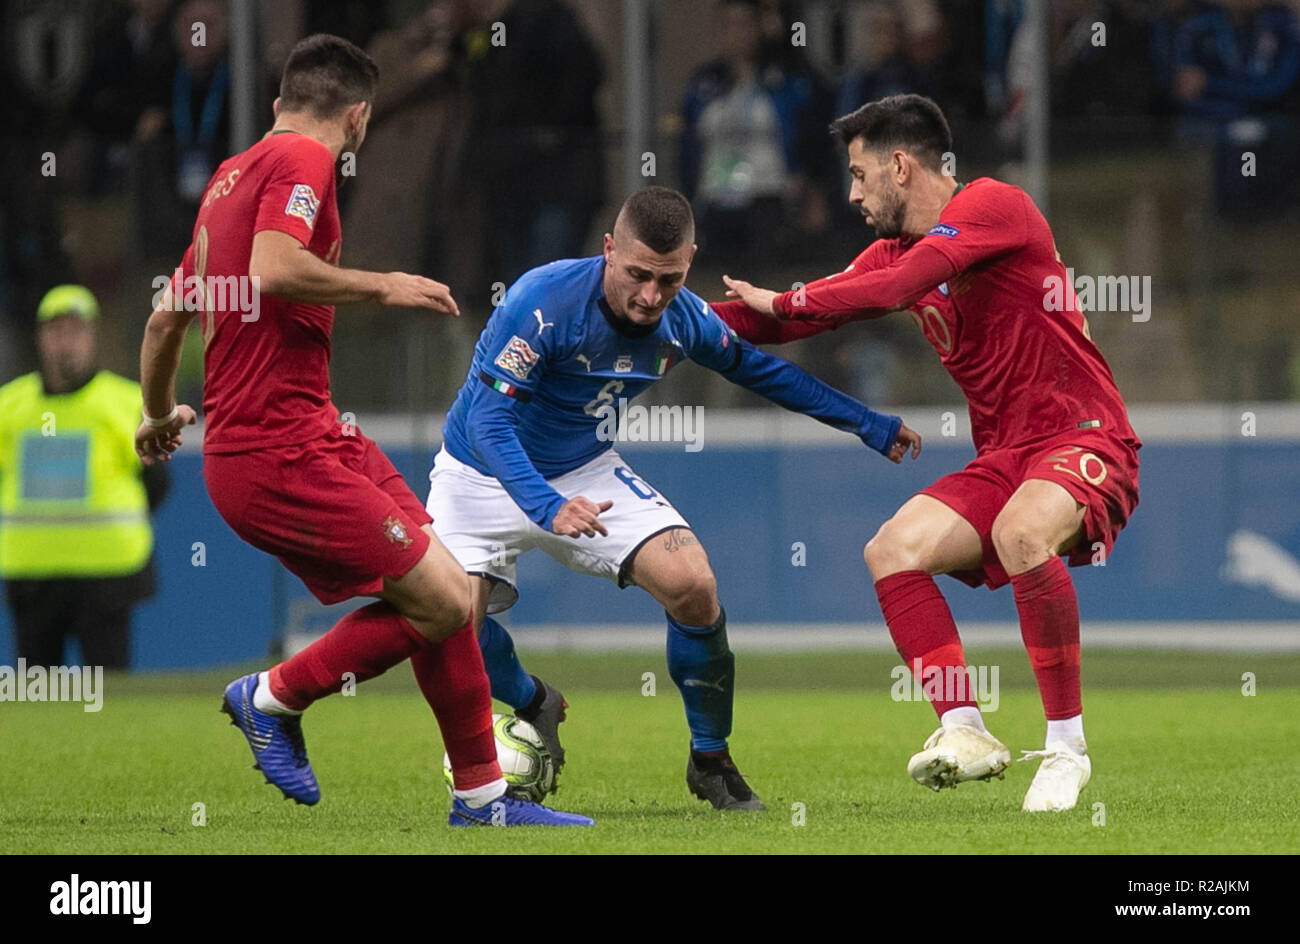 Milan, Italy. 17th Nov, 2018. Pizzi (Portugal) and Marco Verratti (Italy) during the UEFA Nations League 2018, League A, Group 3 football match between Italy and Portugal on November 17, 2018 at Giuseppe Meazza stadium in Milan, Italy - Photo Laurent Lairys / DPPI Credit: Laurent Lairys/Agence Locevaphotos/Alamy Live News Stock Photo